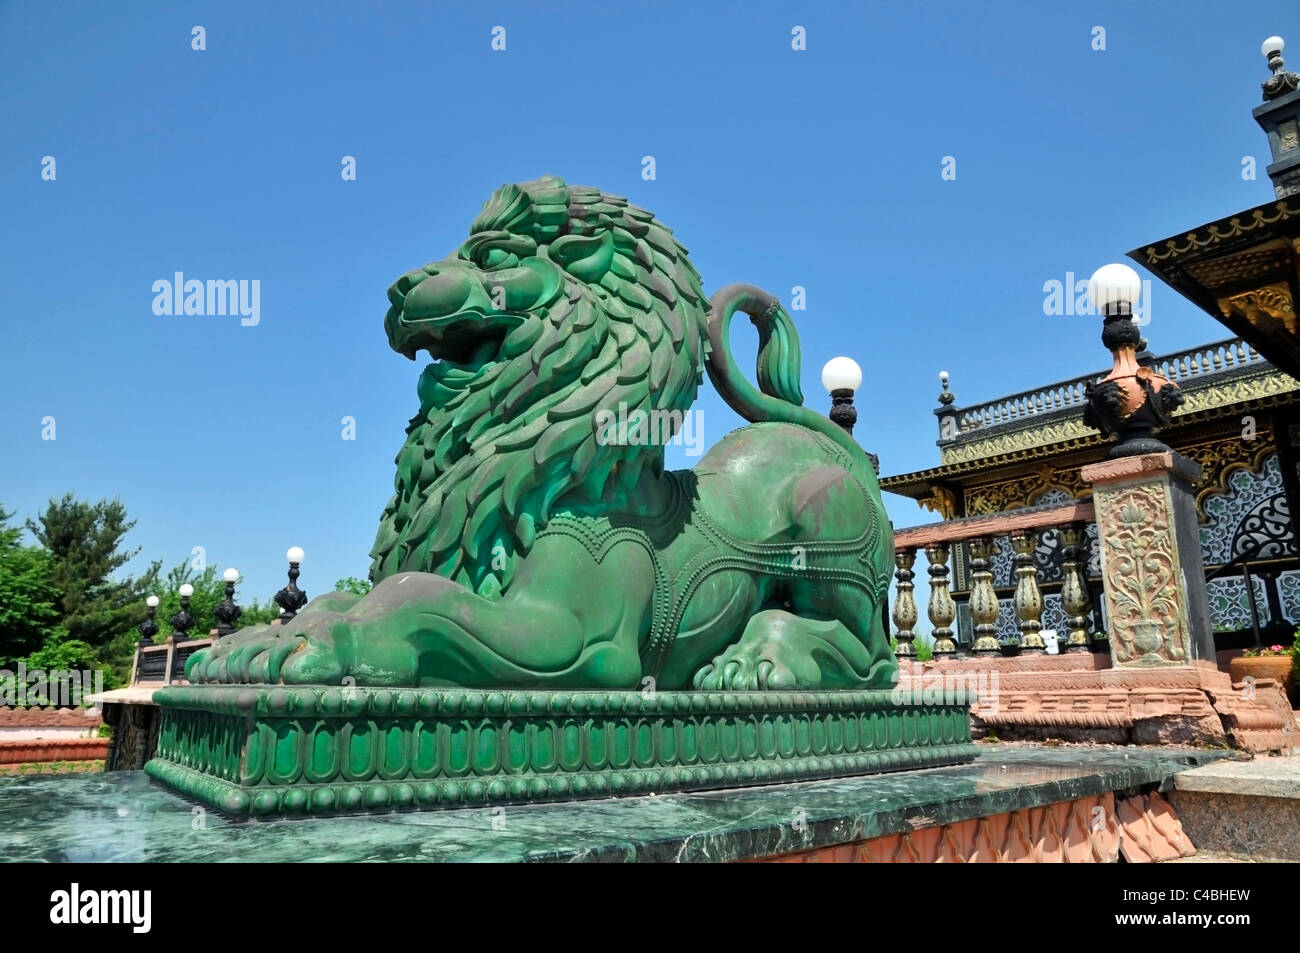 Green statue of lion in front of the Palace of Gold, New Vrindaban , West Virginia,USA - Stock Image